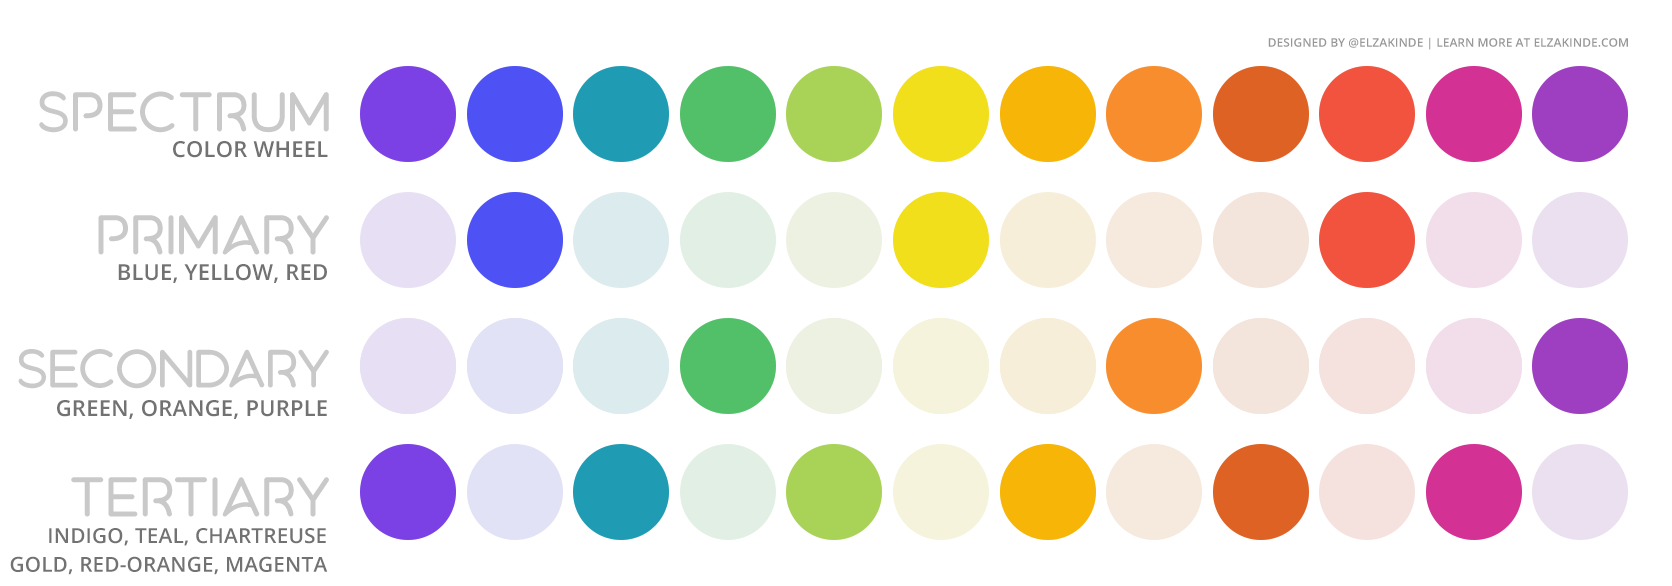 Graphic features four palettes using the twelve colors from the wheel. The top palette contains all twelve colors of the SPECTRUM. The second highlights the PRIMARY colors (blue, yellow, and red). The third highlights SECONDARY colors (green, orange, and purple). The final palette highlights the TERTIARY colors (indigo, teal, chartreuse, gold, red-orange, and magenta).